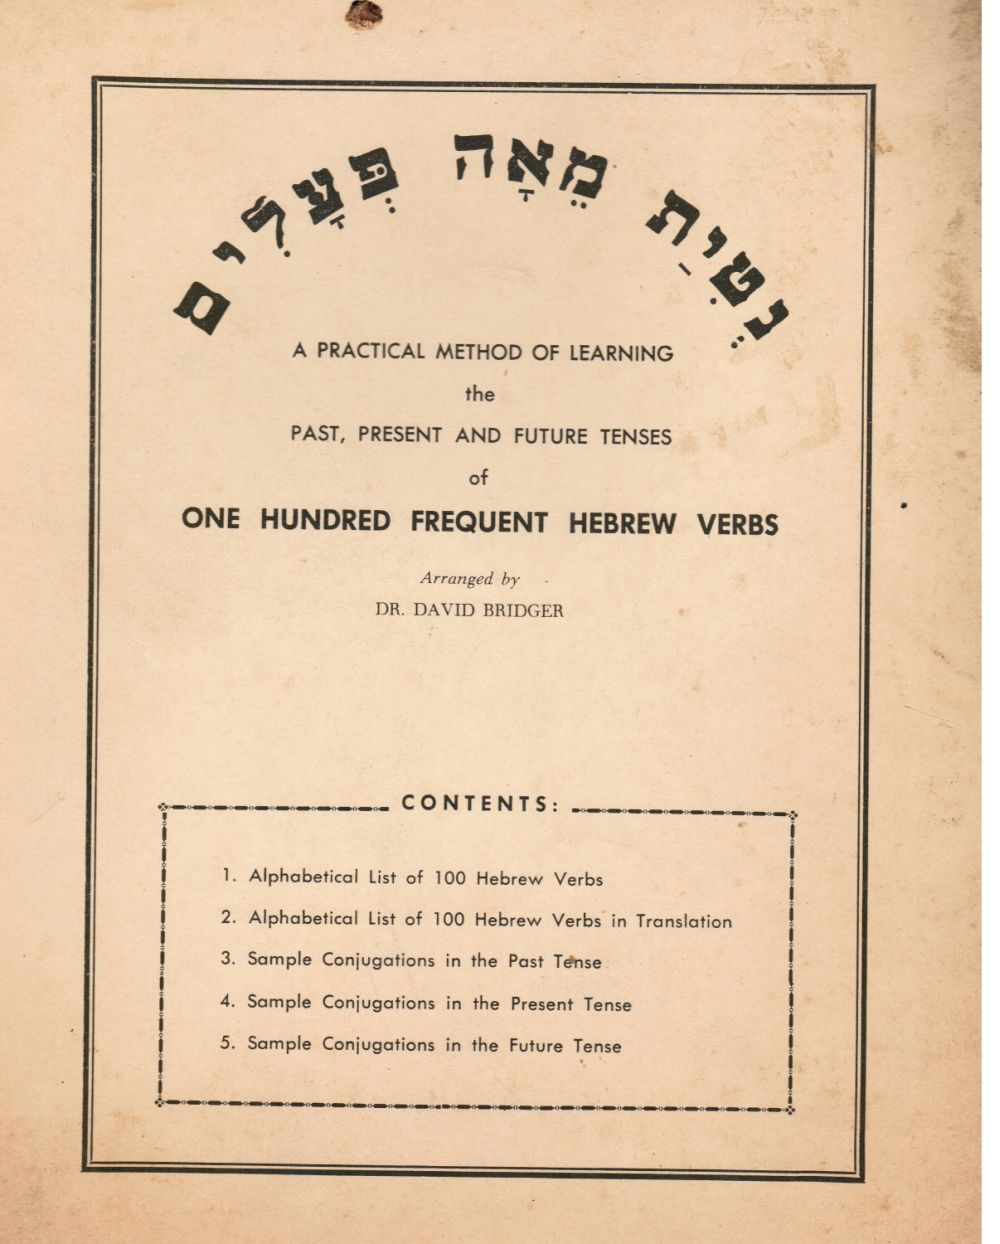 Image for A Practical Method of Learning the Past, Present and Future Tenses of One Hundred Frequent Hebrew Verbs Netiyat Ma'atah Pe'alim